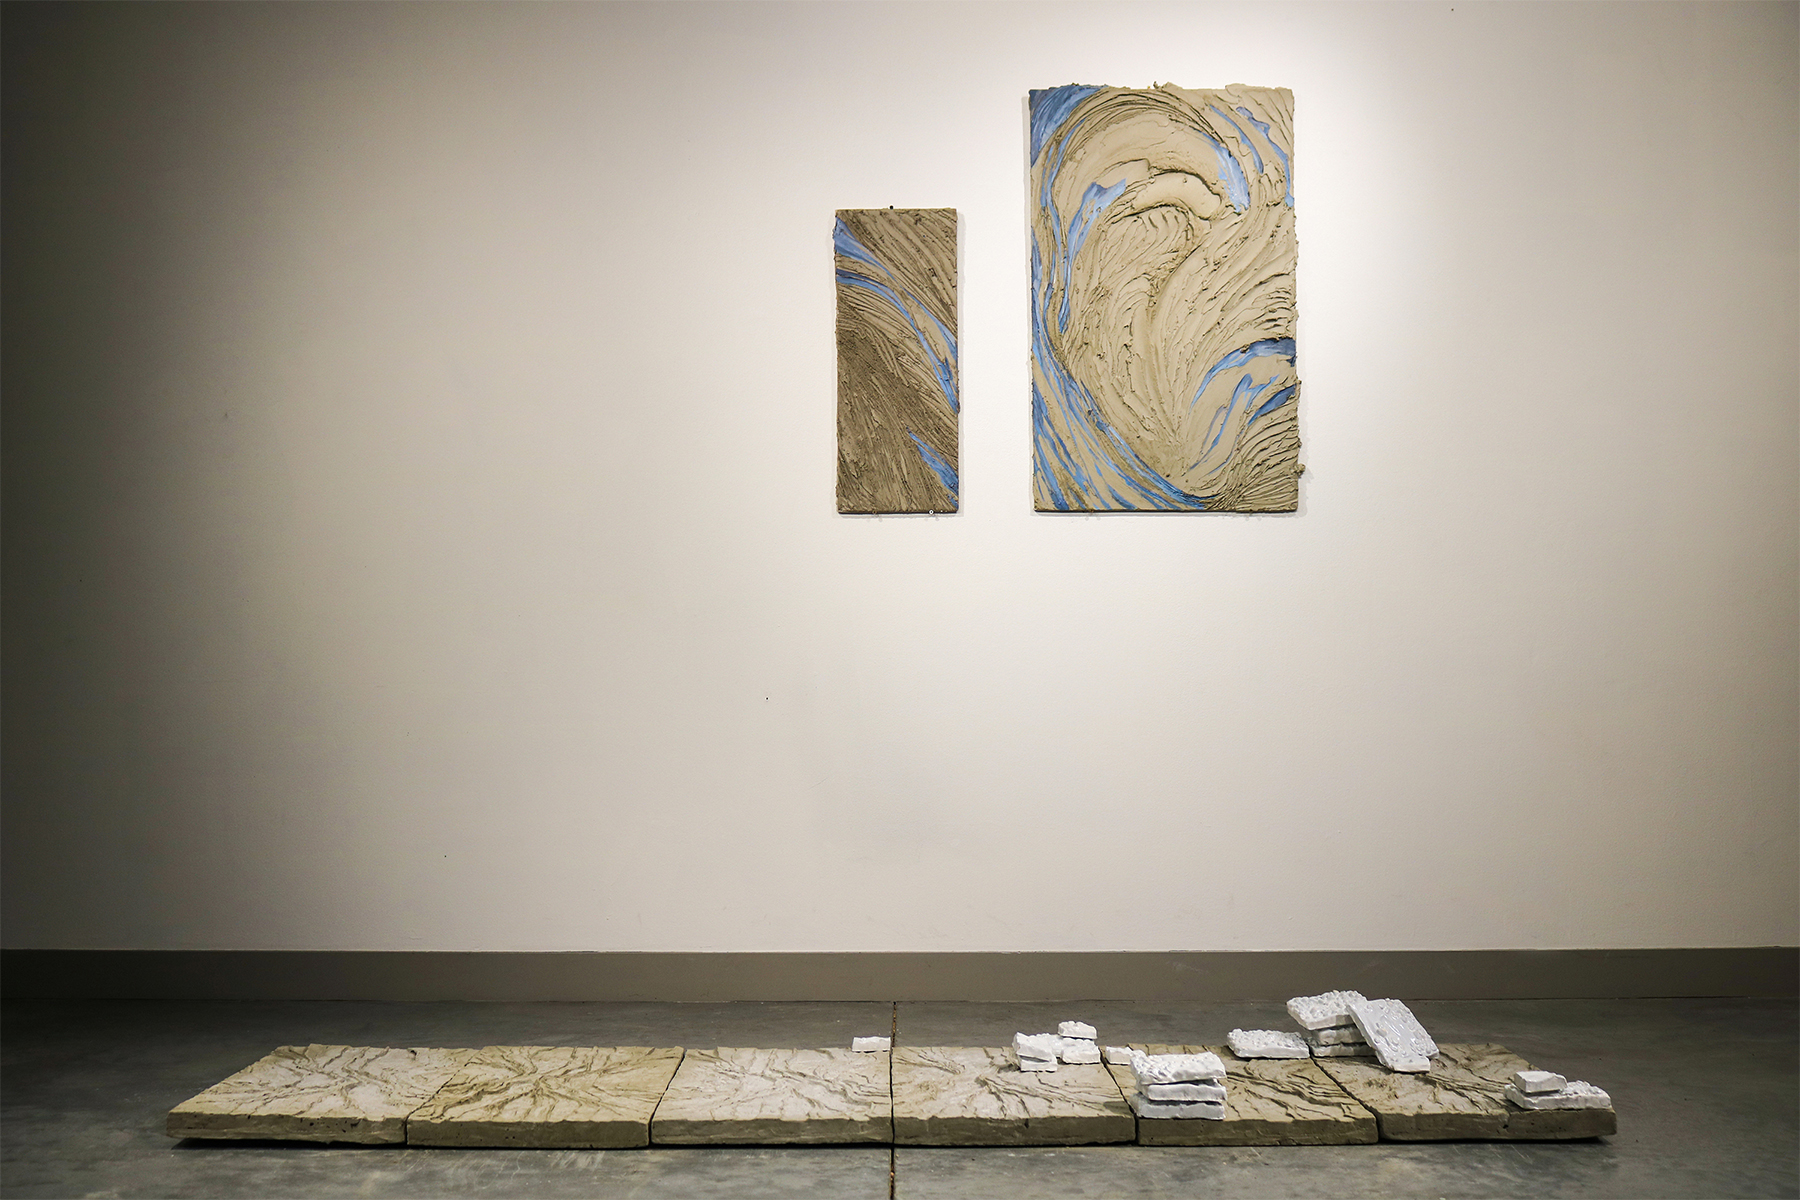 Alluvium - Oil Paint & Mortar on Backerboard, Cast Cement, Clay, Shellac - 2020